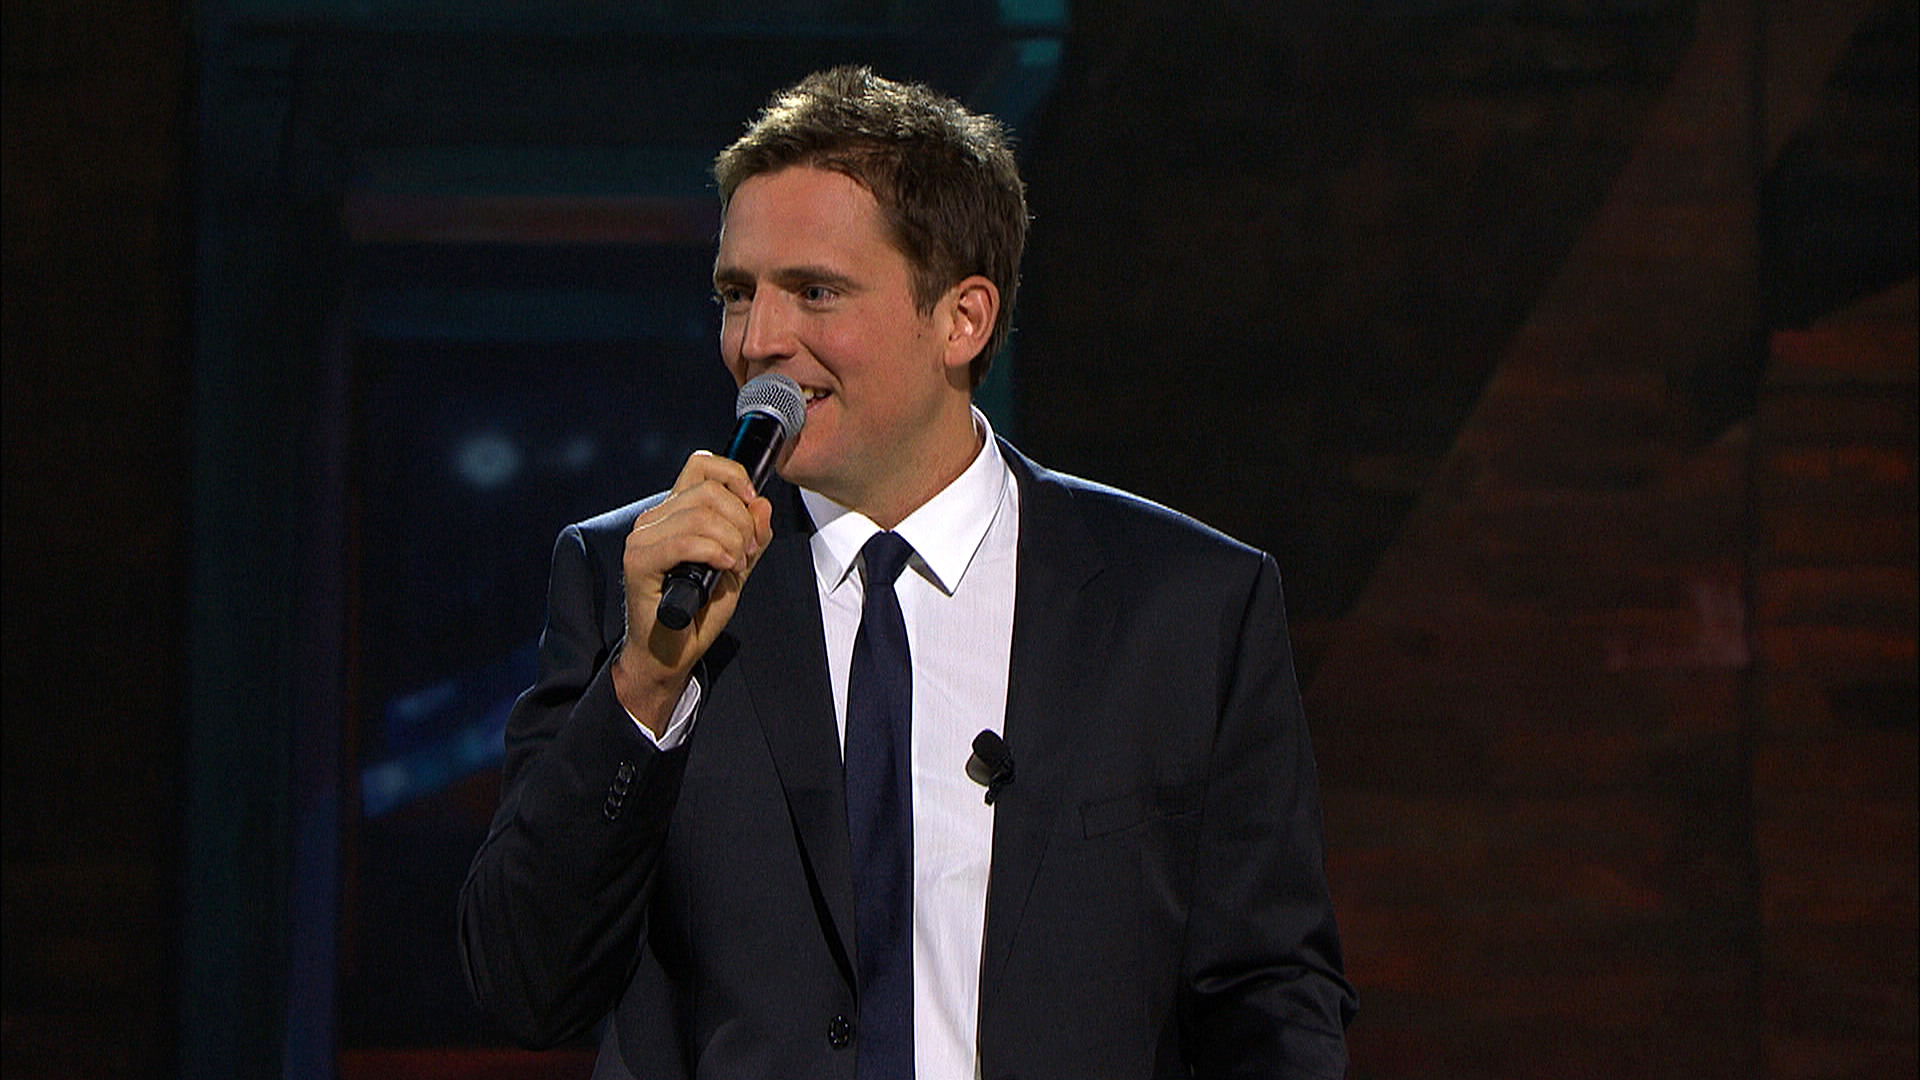 Uncensored - Owen Benjamin - Opening for Julio Iglesias